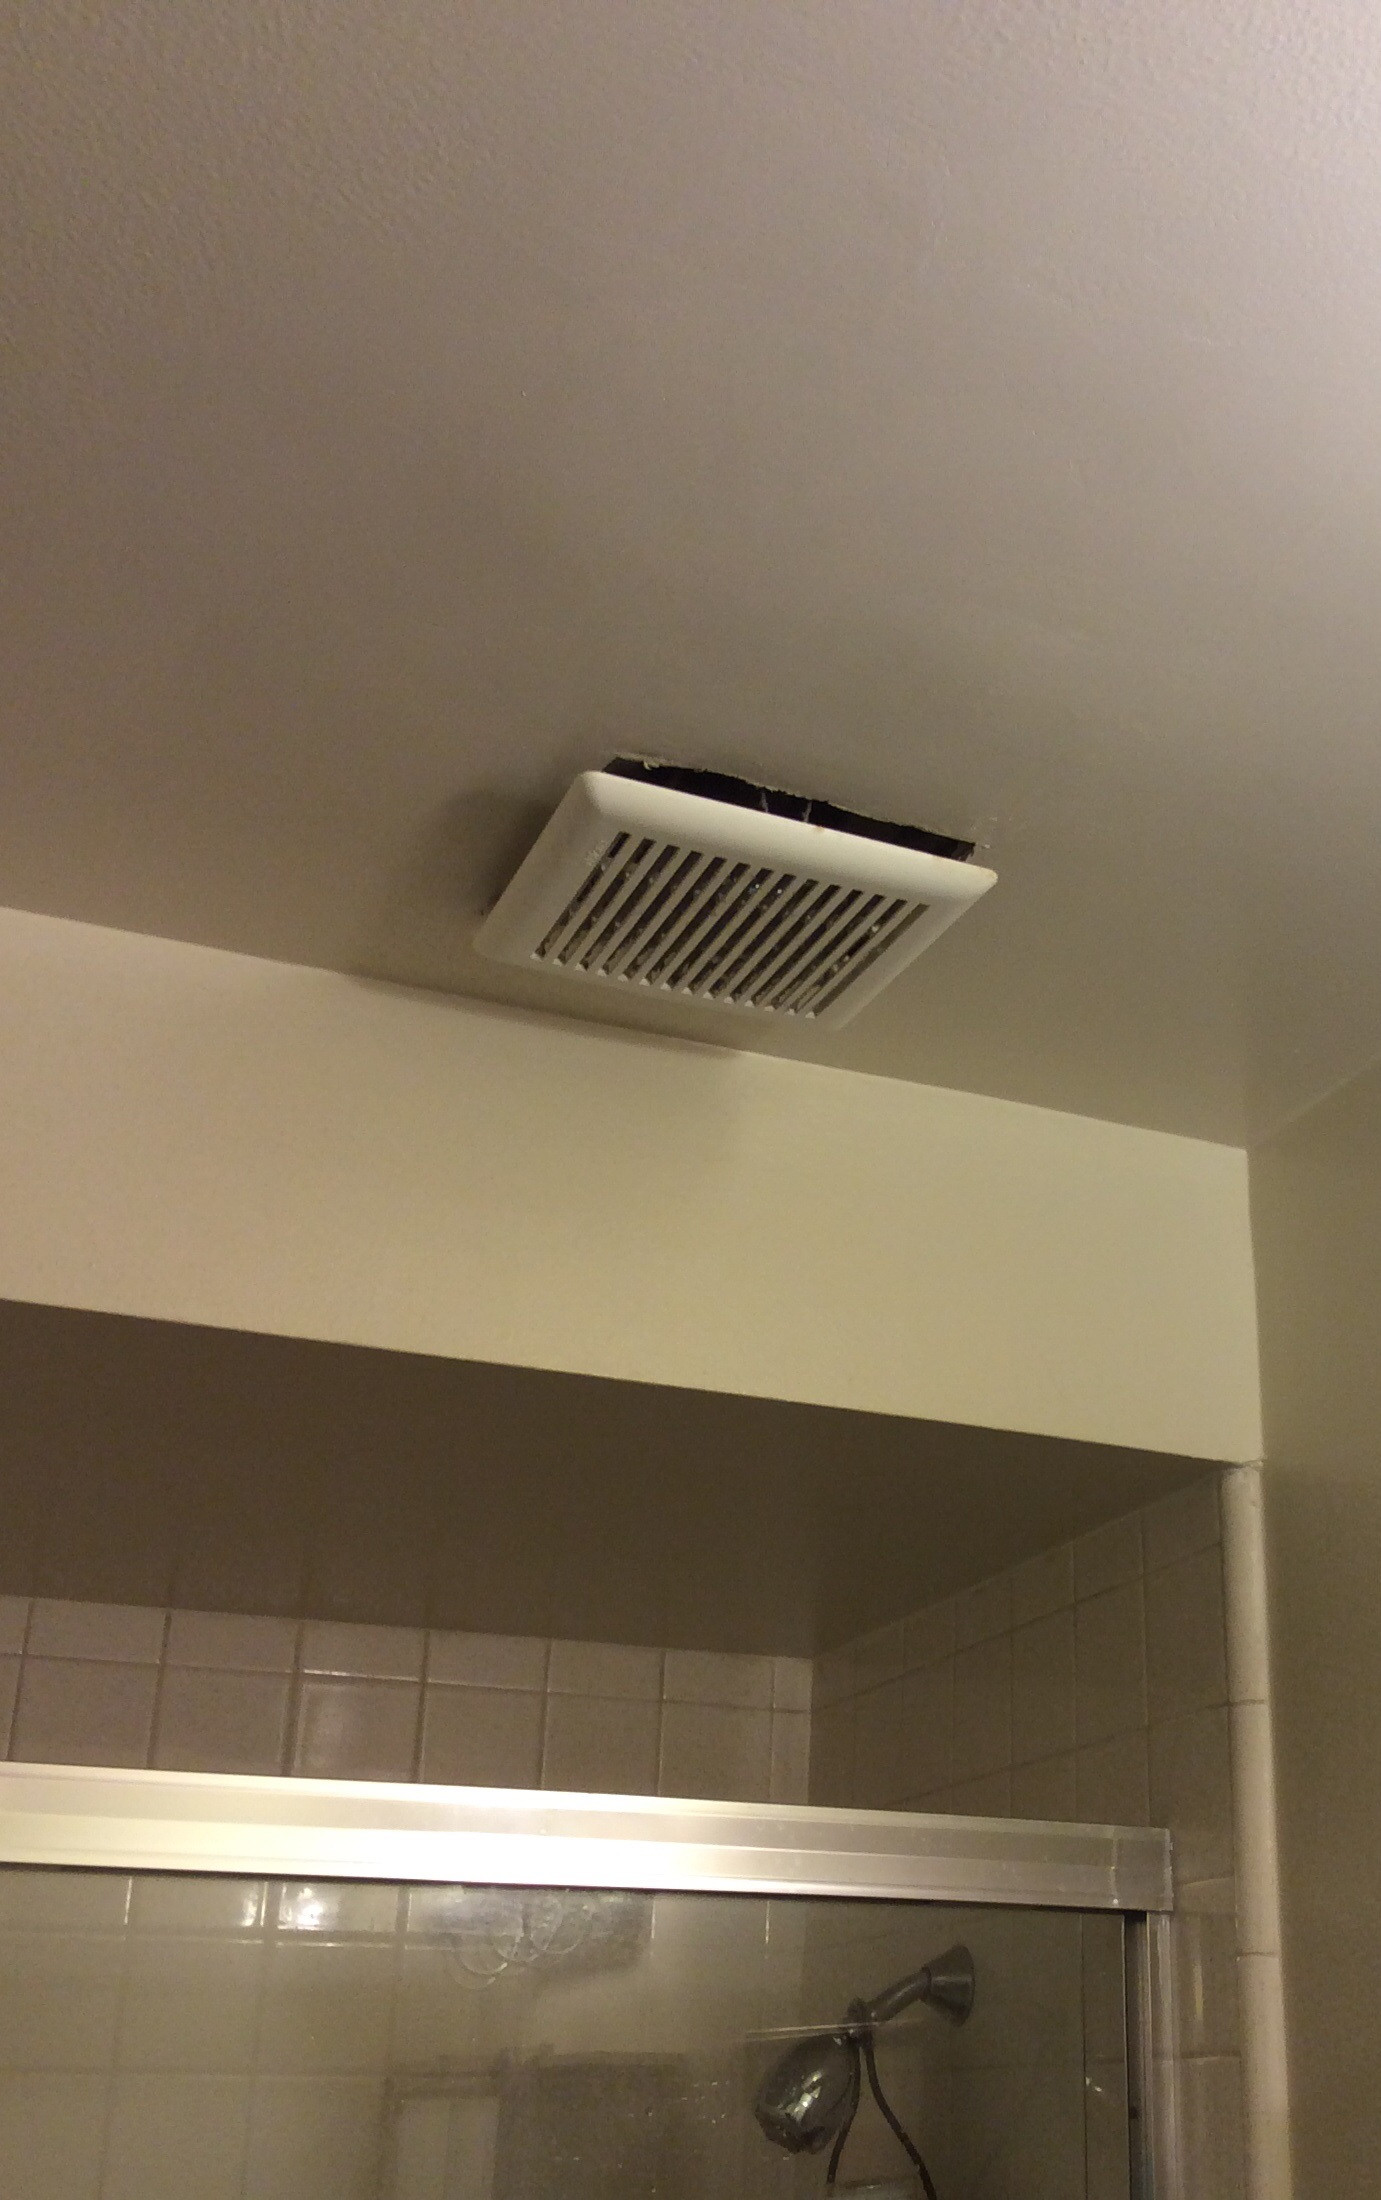 Bathroom Fan Cover Bathroom Is It Normal For An Exhaust Fan Cover To Hang